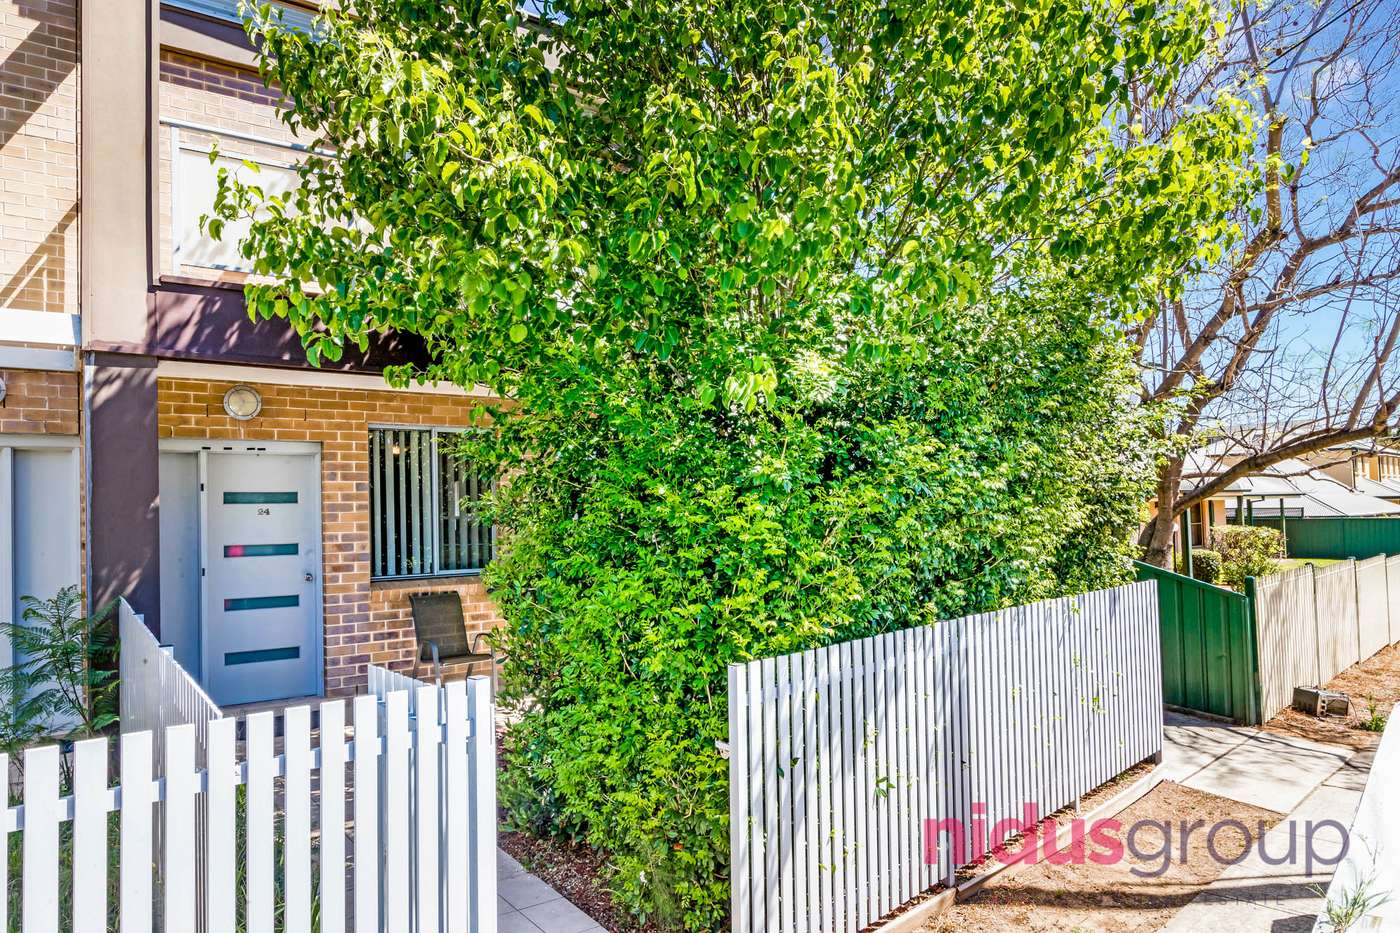 Main view of Homely townhouse listing, 24/1-3 Putland Street, St Marys, NSW 2760